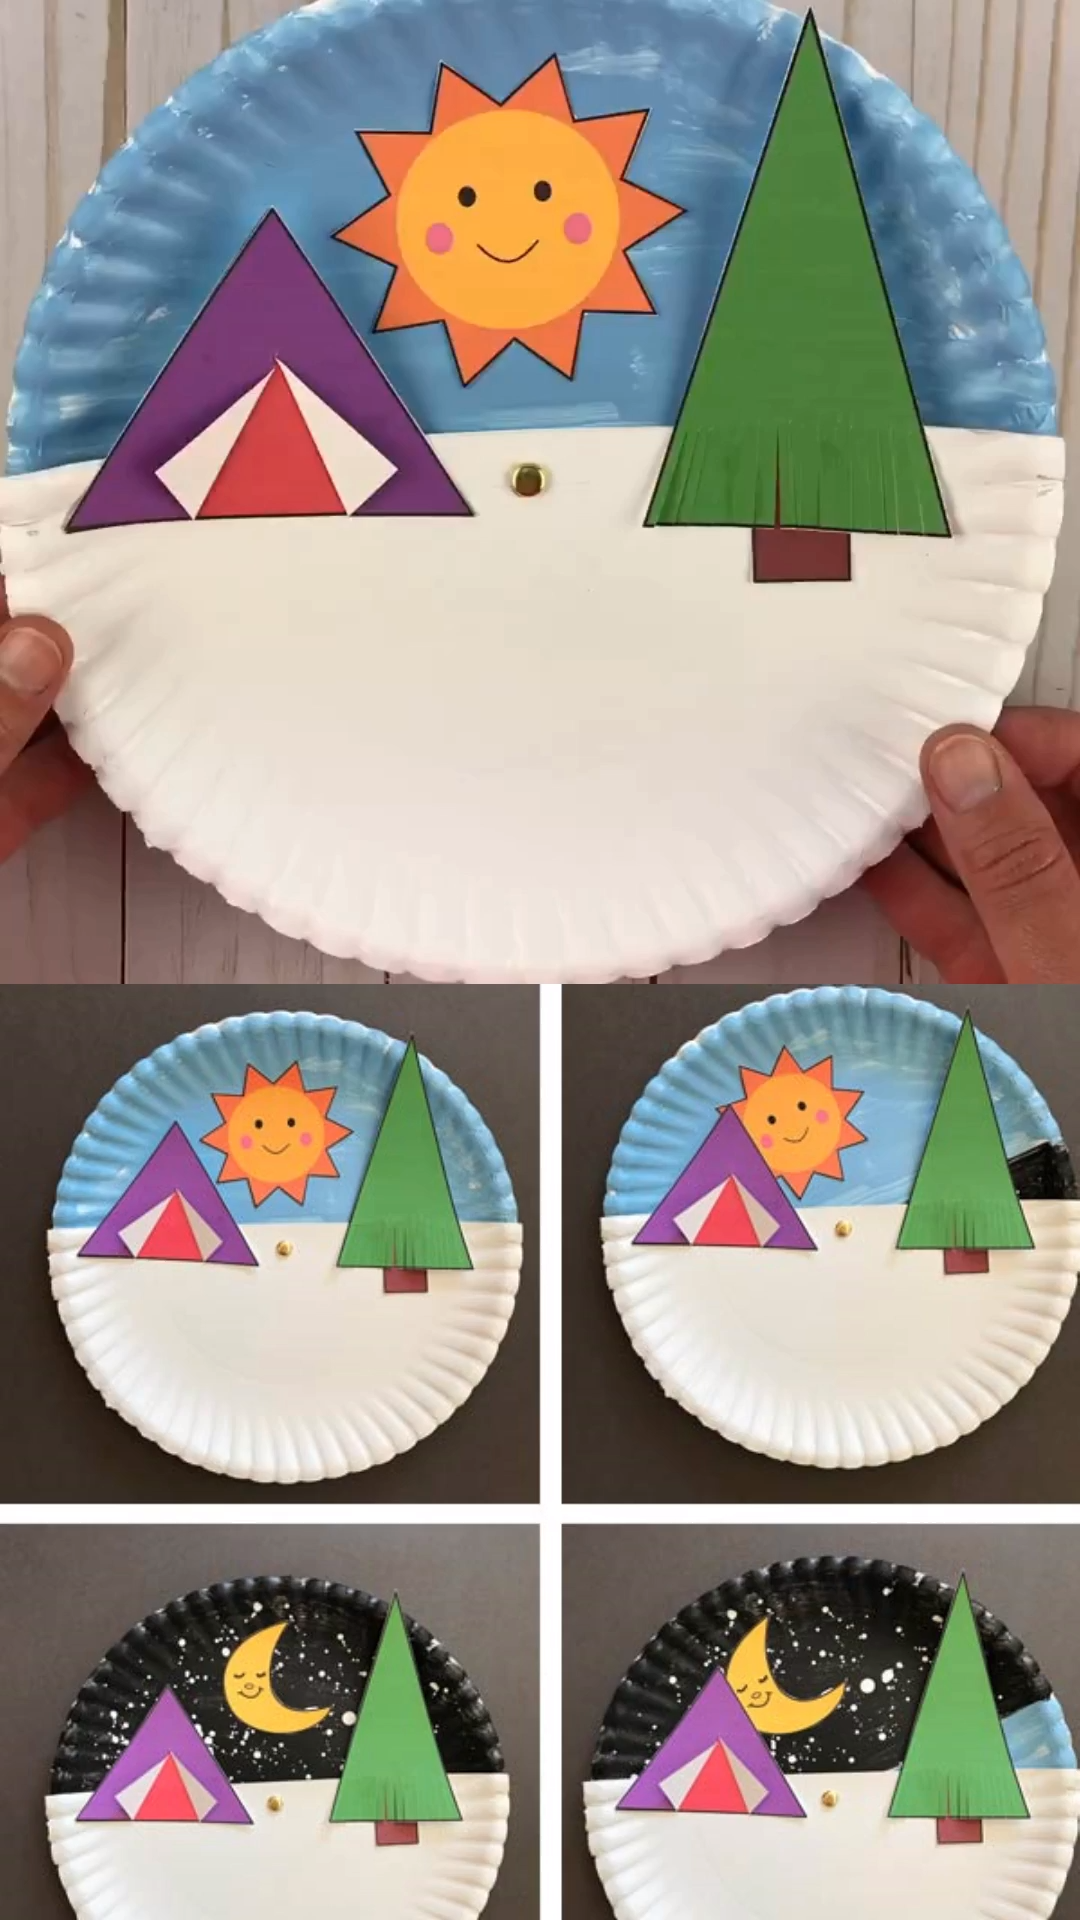 Paper plate day and night summer camping craft for kids. Interactive craft with printable template. Great to get preschoolers and older kids excited over outdoor summer fun, smores, campfire and tents. #campingcraft #paperplatecraft